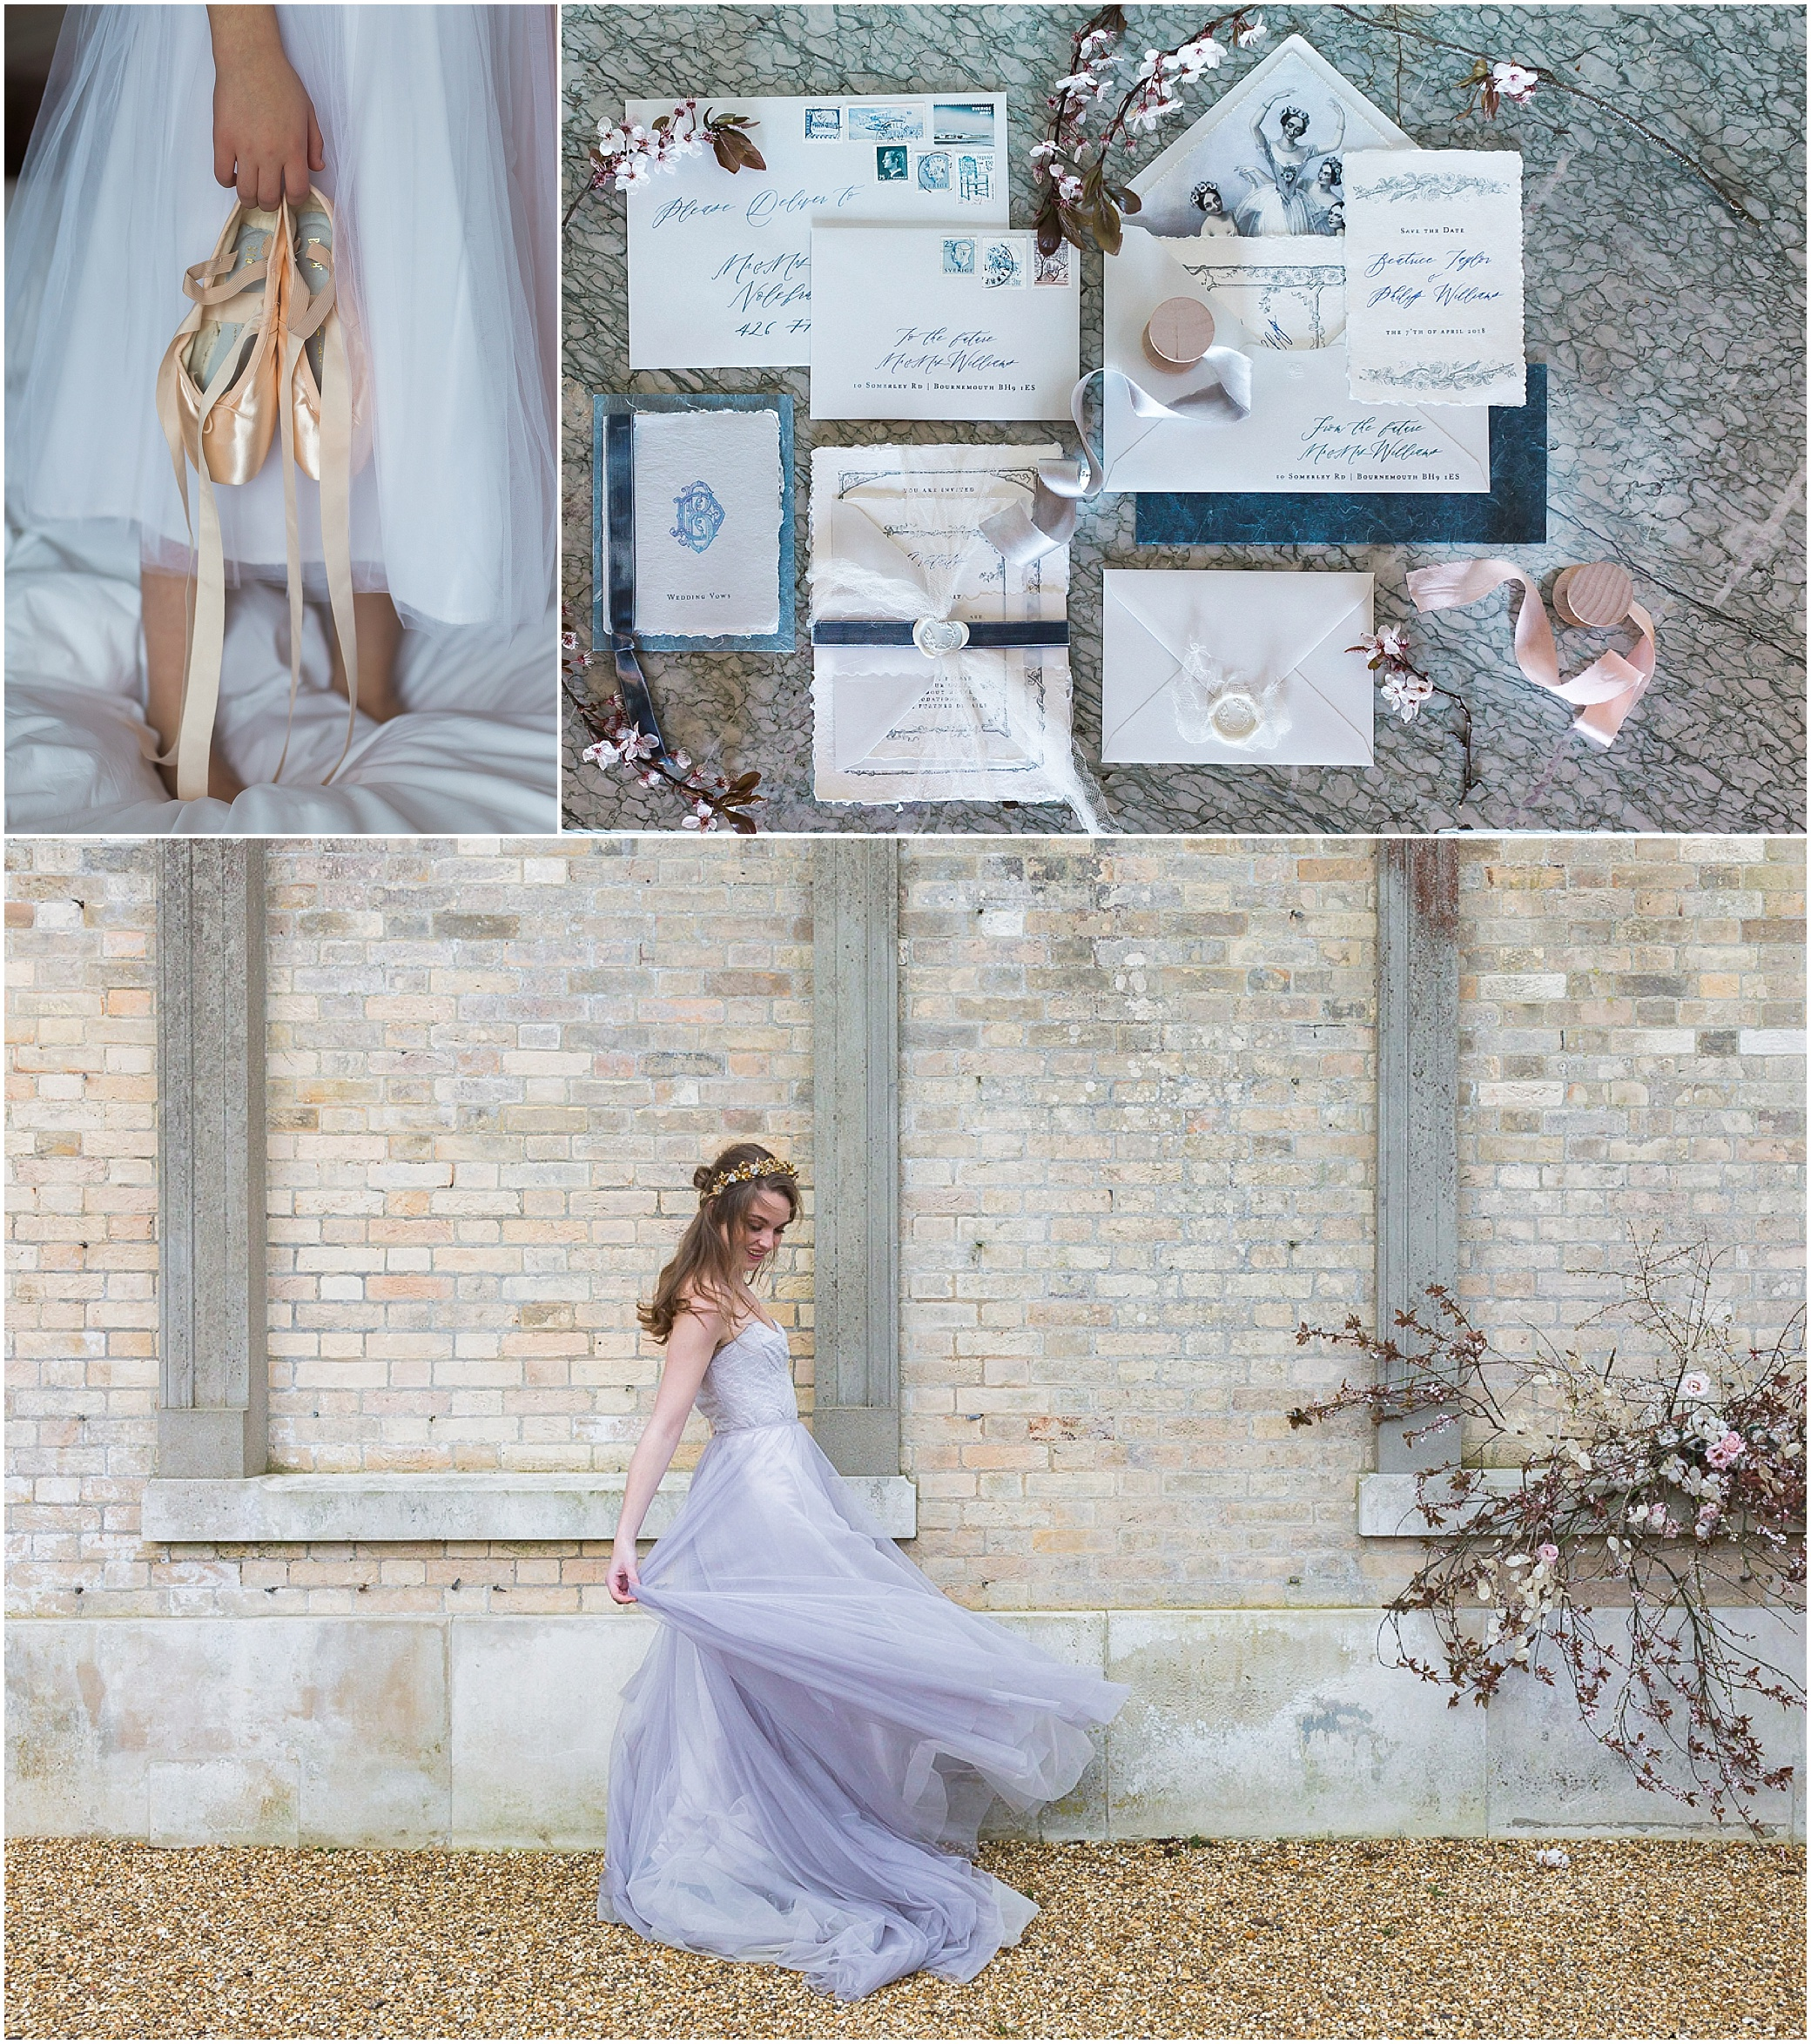 ballet shoes, invitation suite and bride dancing outside Somerley House in Hampshire